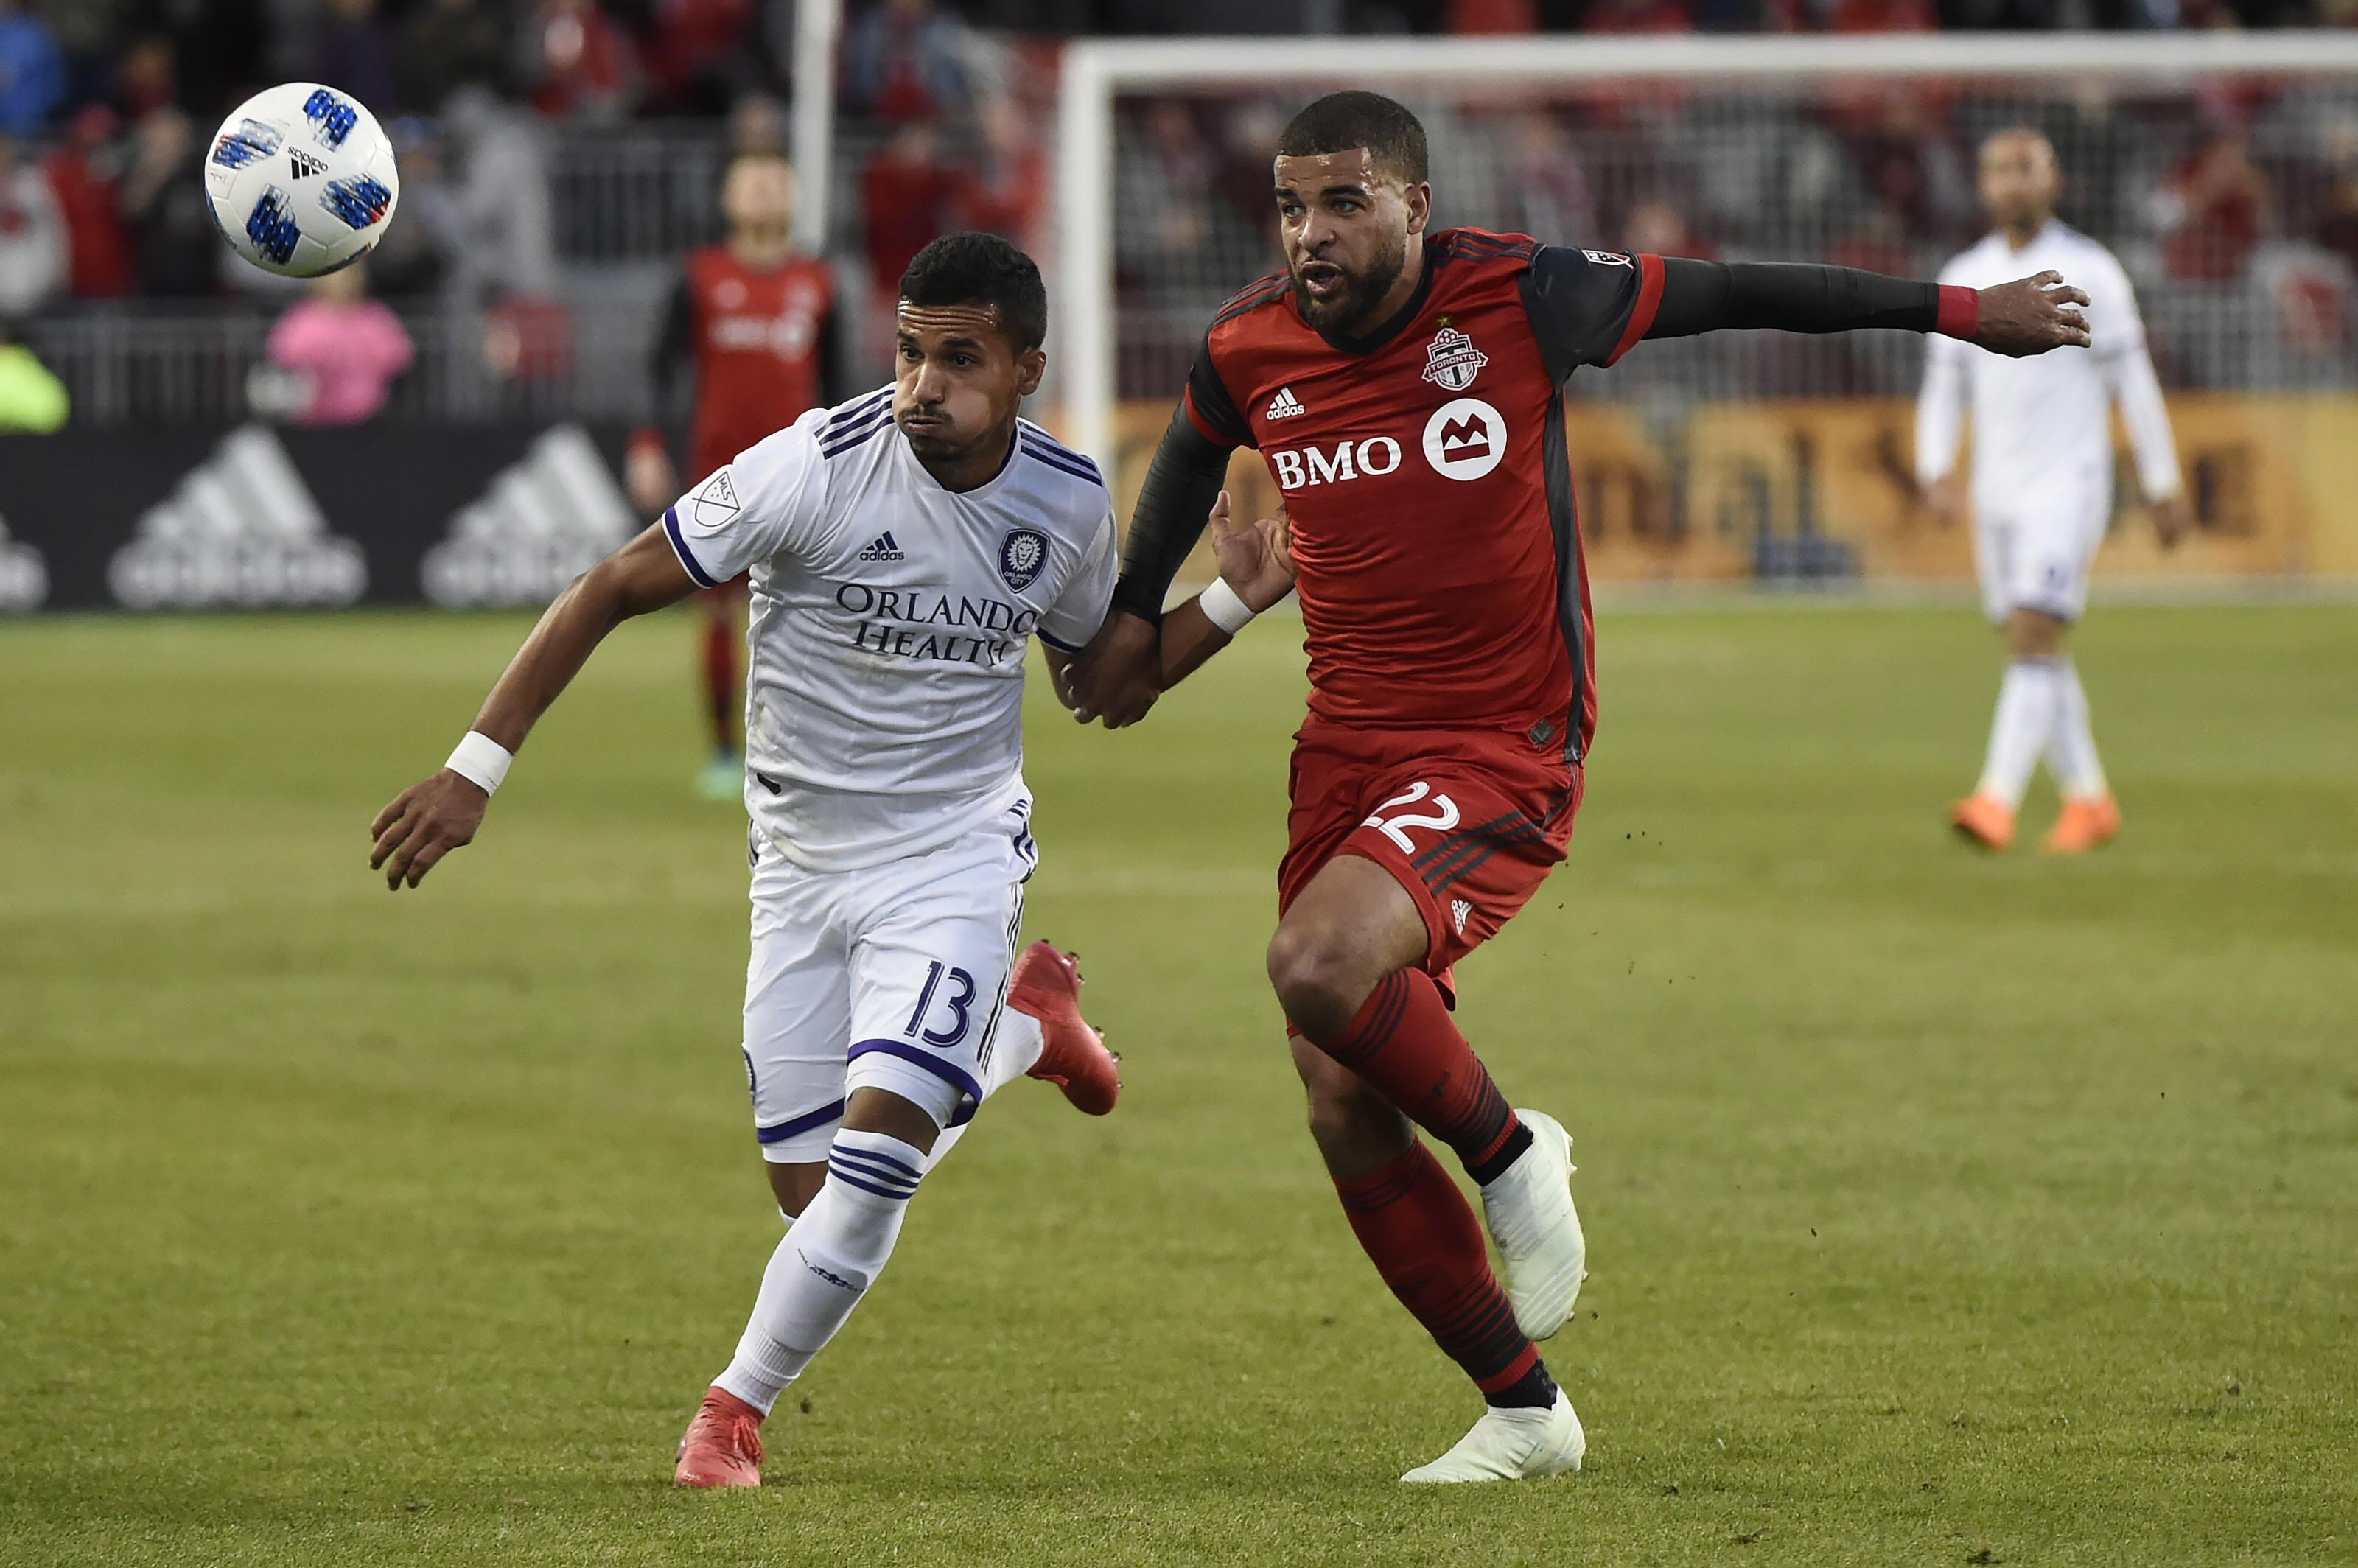 Toronto FC forward Jordan Hamilton (22) and Orlando City defender Mohamed El-Munir (13) chase the bouncing ball during the first half of an MLS soccer match in Toronto on Friday.